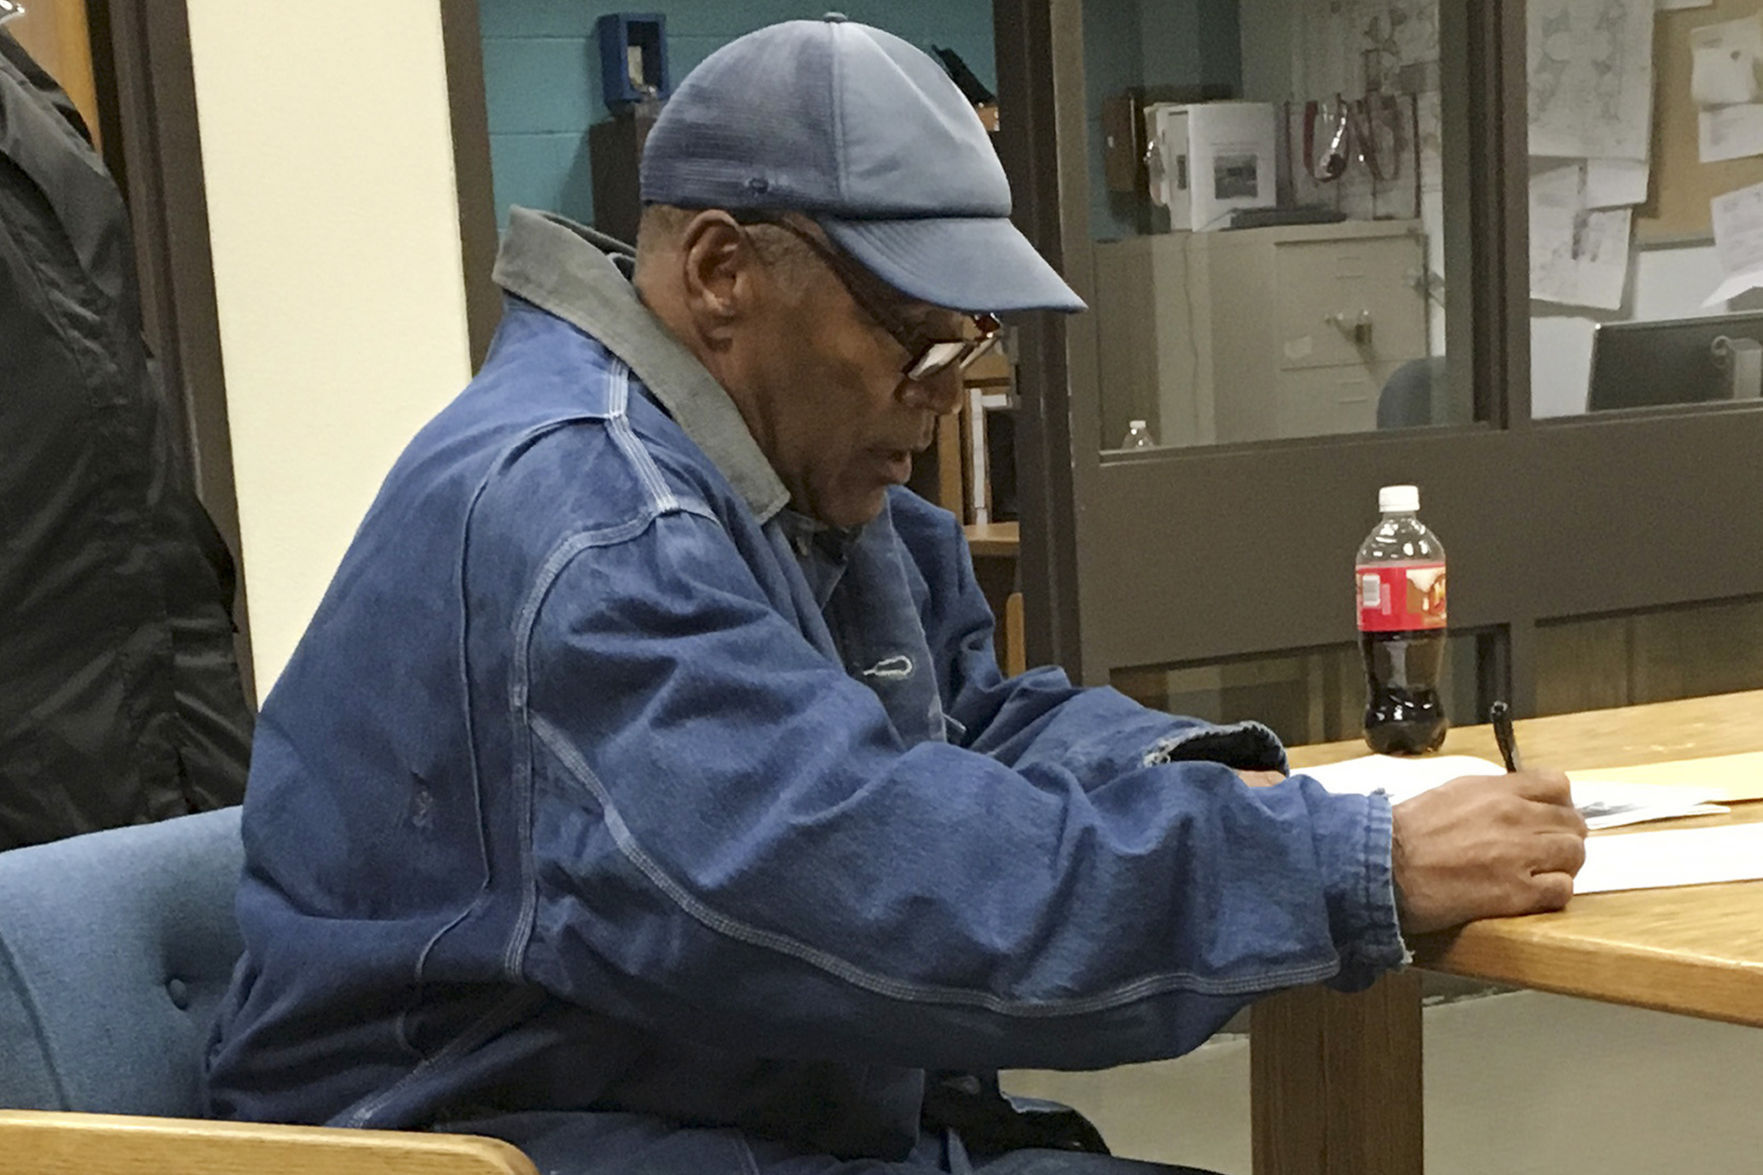 Former football player OJ Simpson released from prison